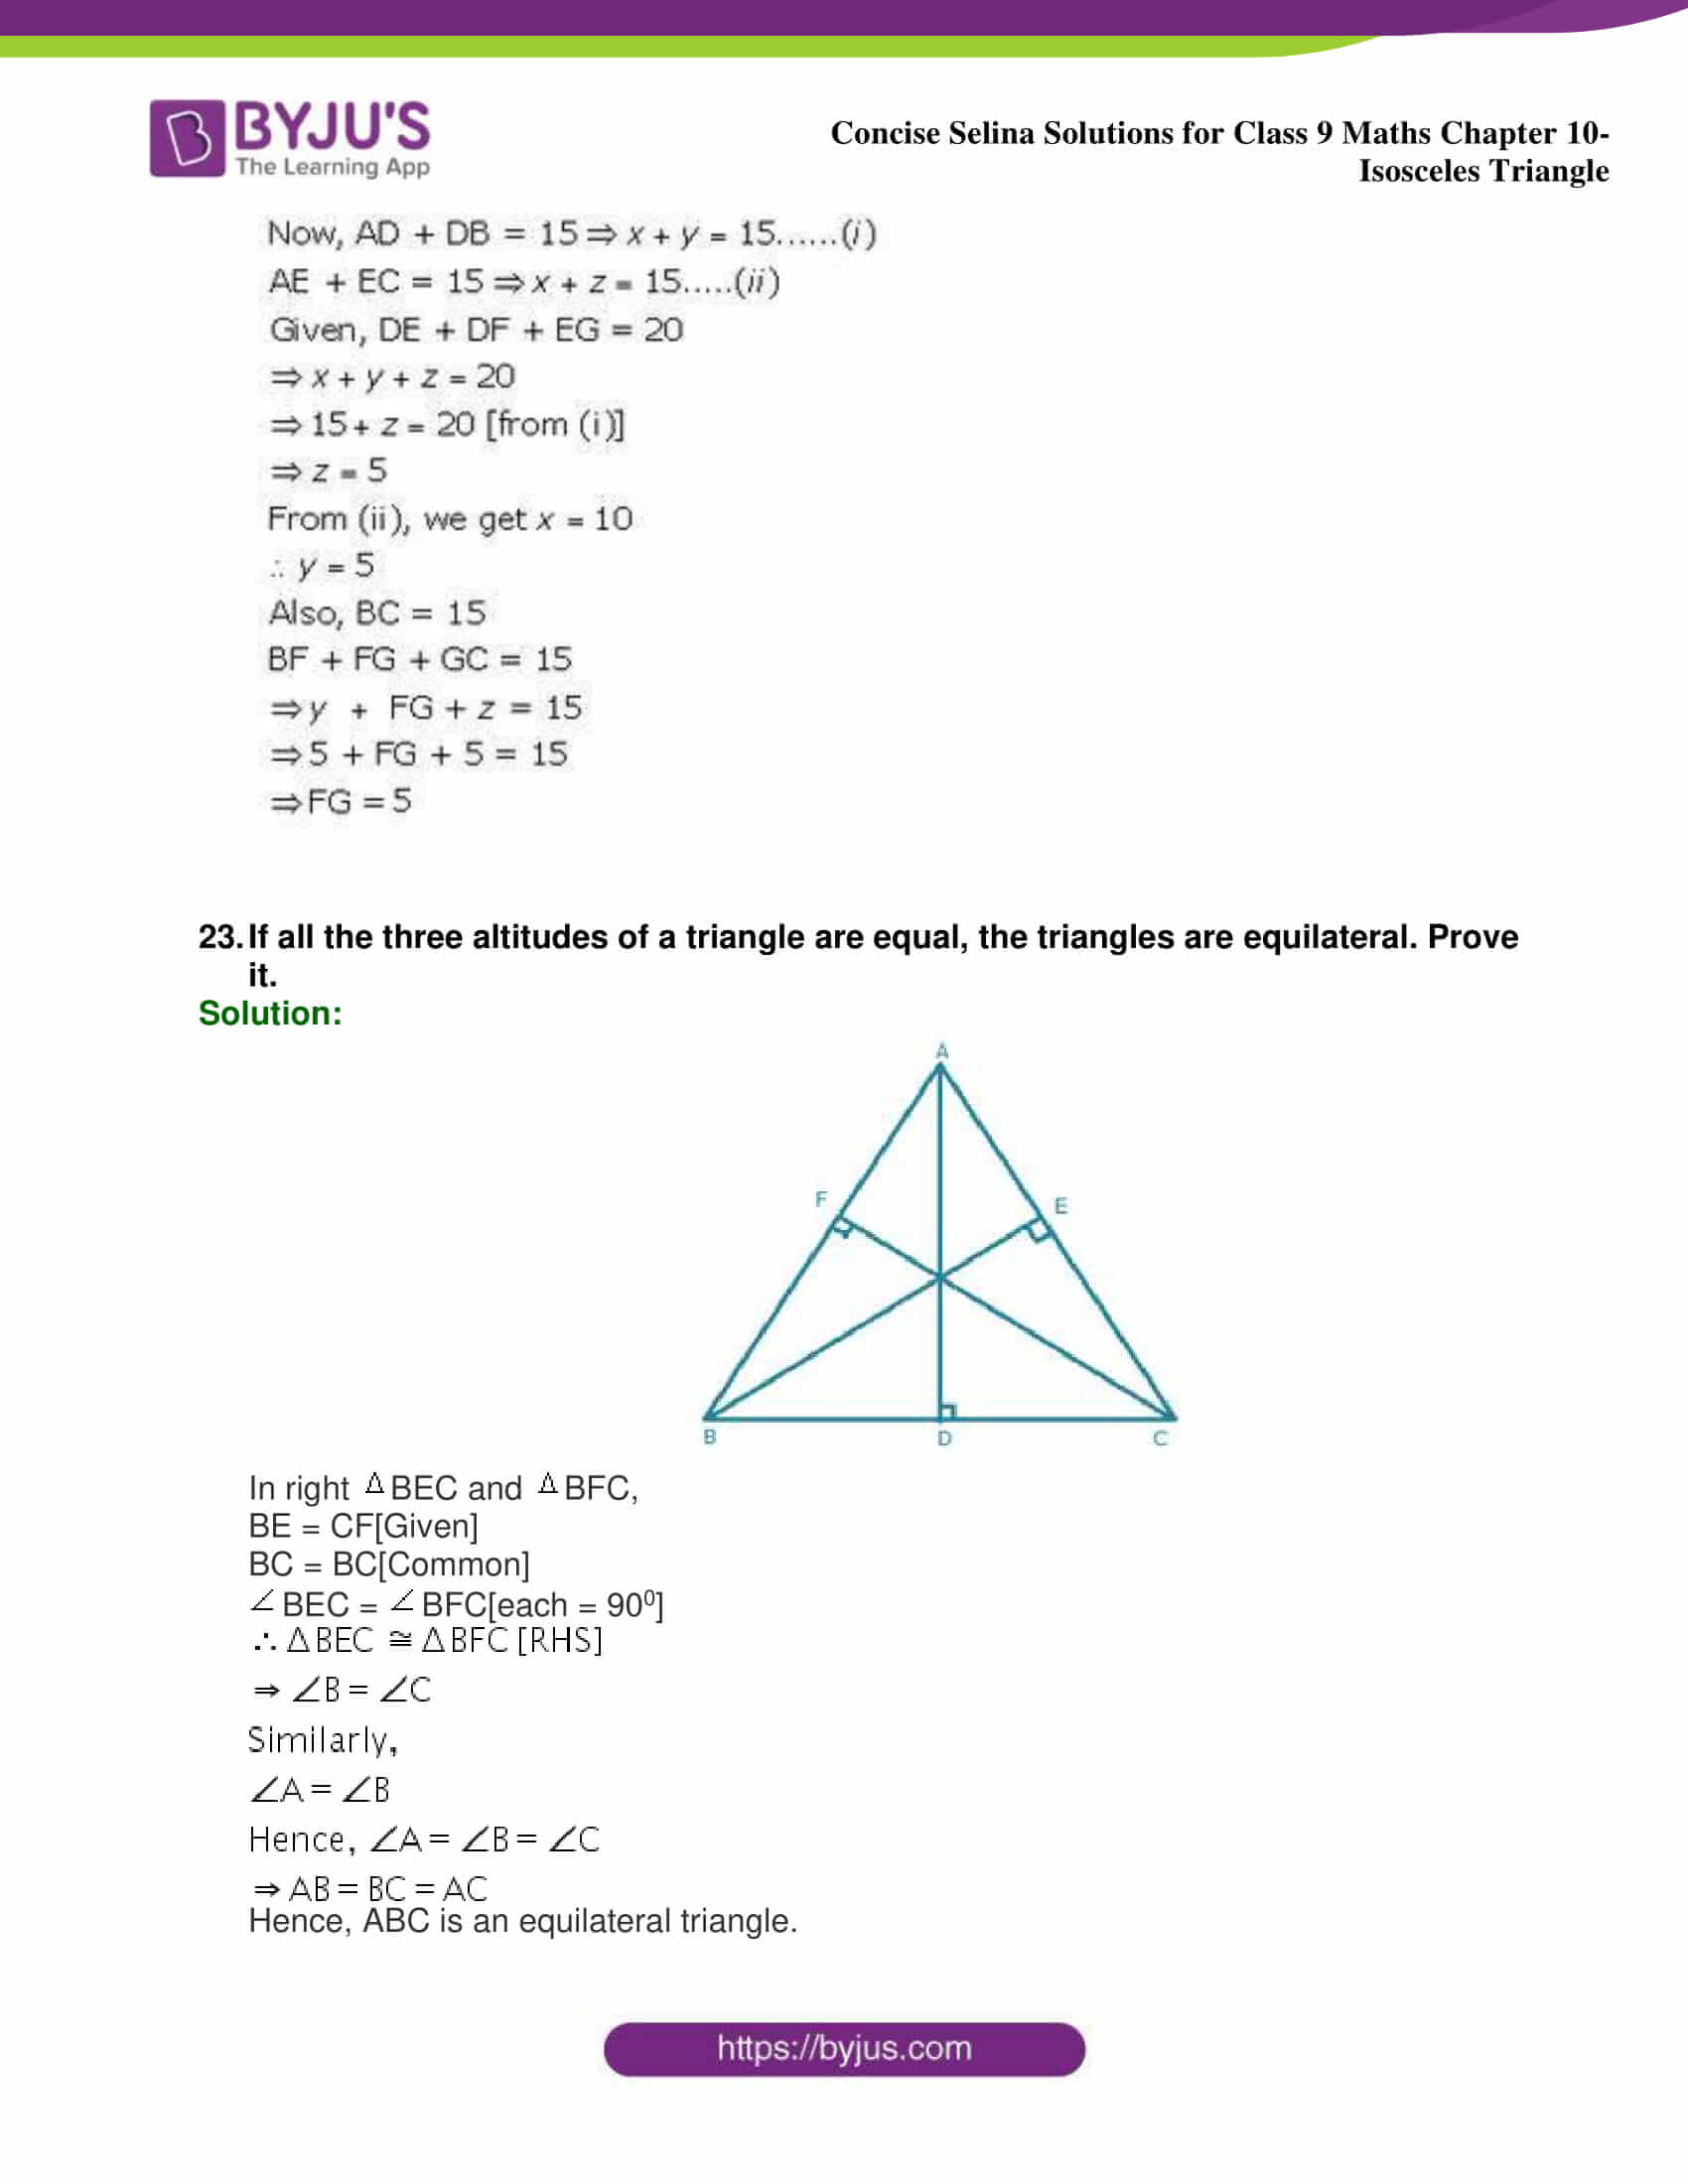 selina Solutions for Class 9 Maths Chapter 10 part 41